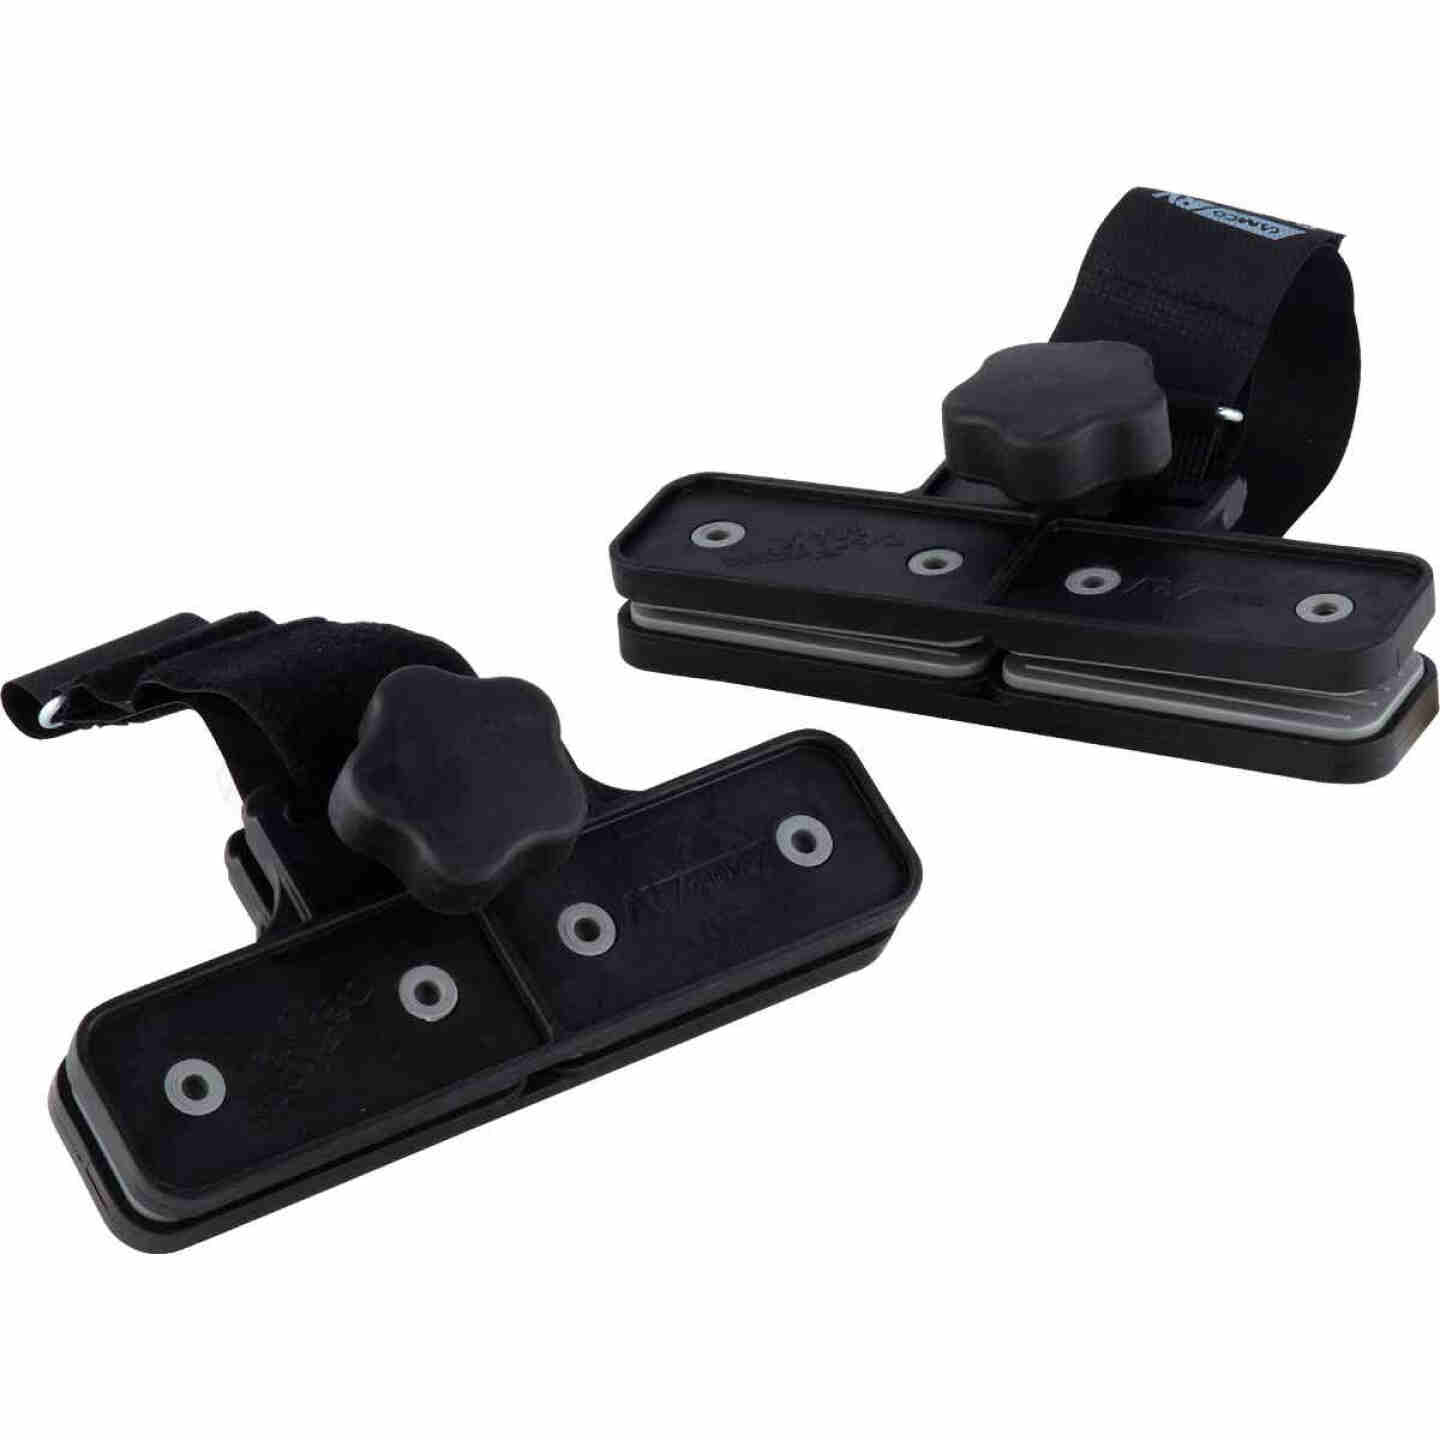 Camco Plastic RV De-Flapper Awning Strap, (2-Pack) Image 3